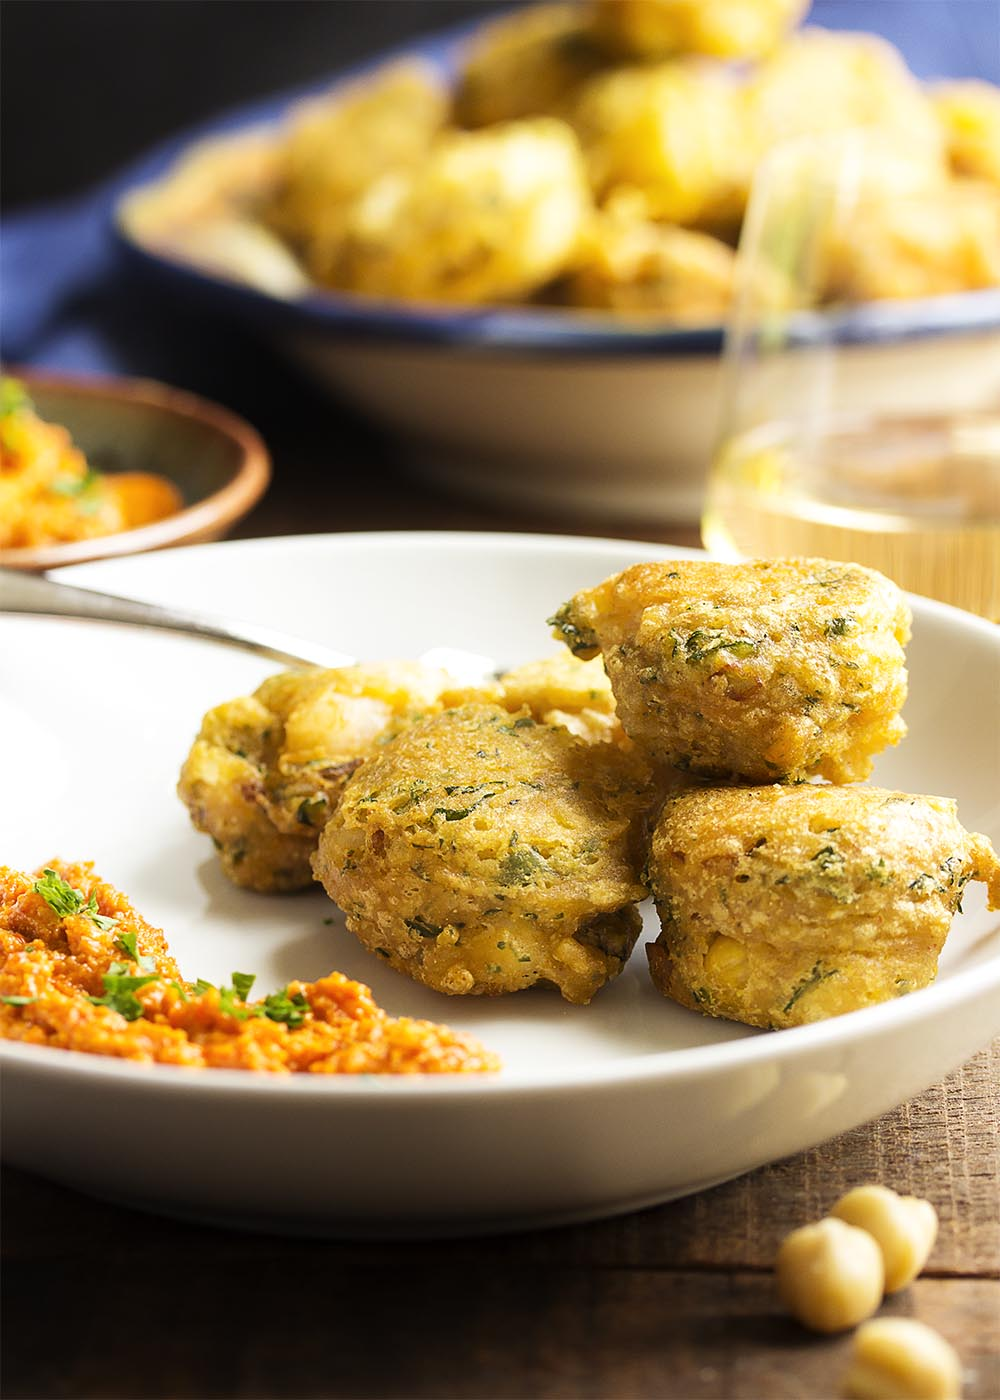 Gluten Free Chickpea Shrimp Fritters - These light and crispy fritters of chickpea flour and chopped shrimp are quickly fried to make a tasty and gluten free appetizer. The recipe includes a vegan option too! | justalittlebitofbacon.com